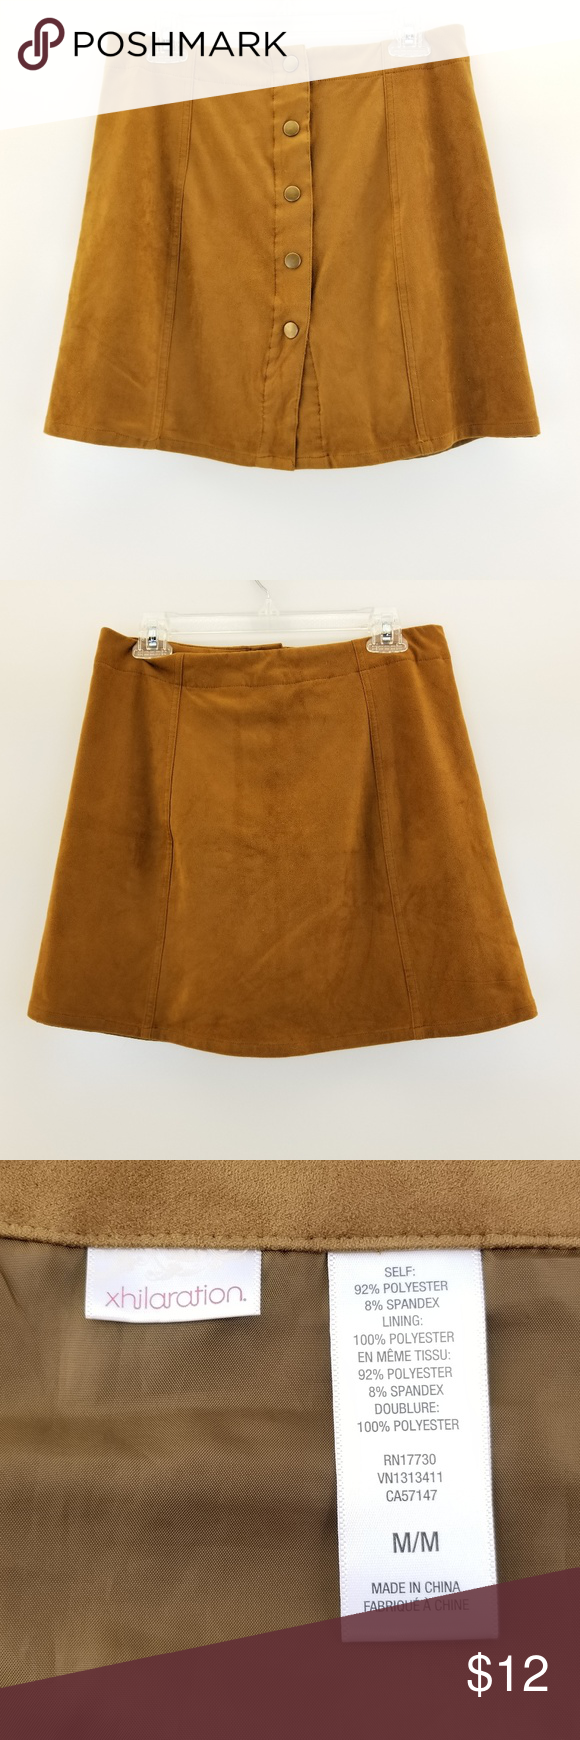 3527f82090e5 XHILARATION Faux Suede Buttoned Front Skirt A beautiful tan suede button-front  skirt that is